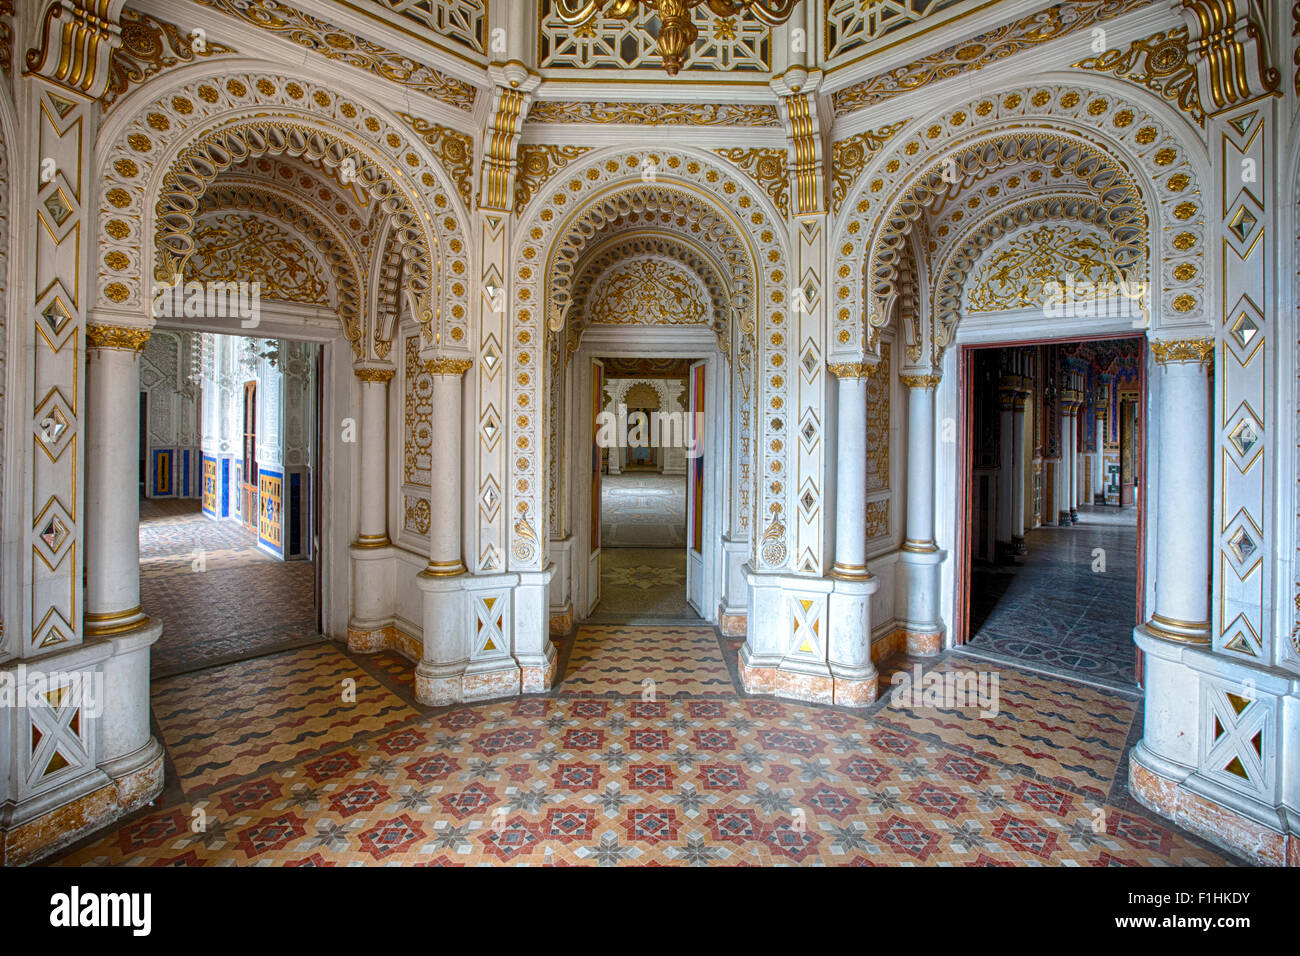 moorish style palace interior architecture stock photo